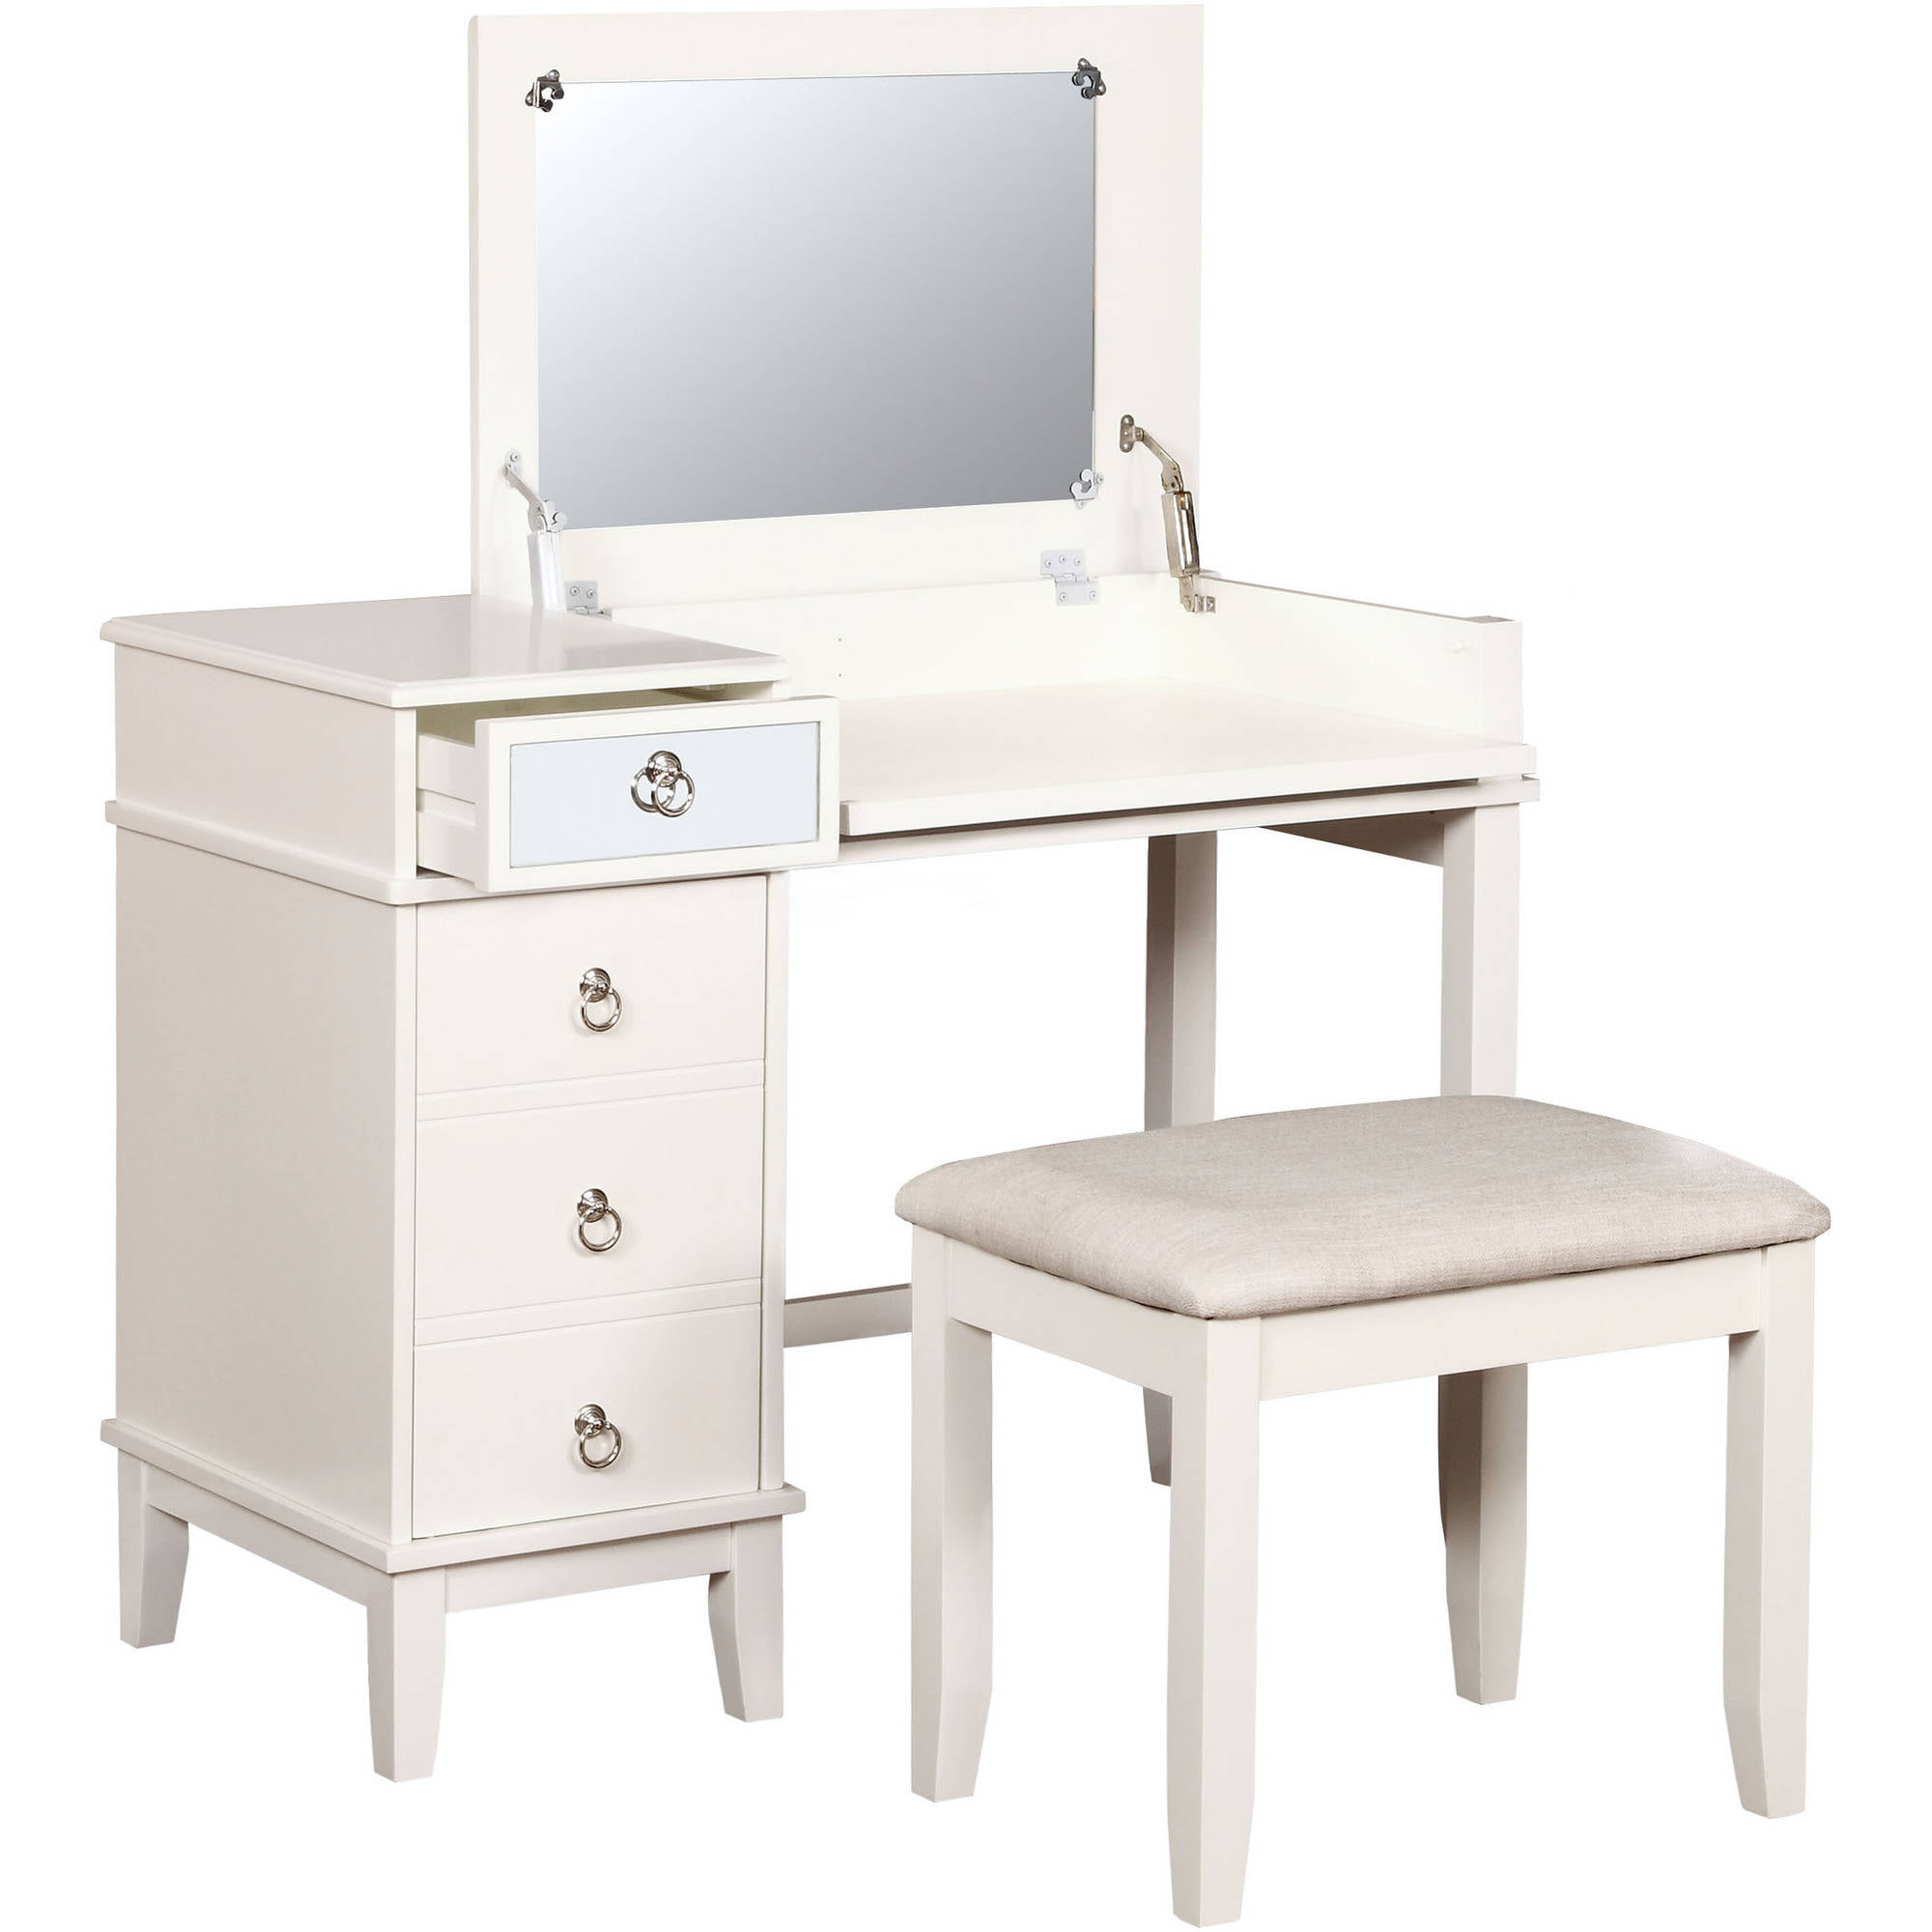 Vanities, Bedroom Vanities, Makeup Vanities